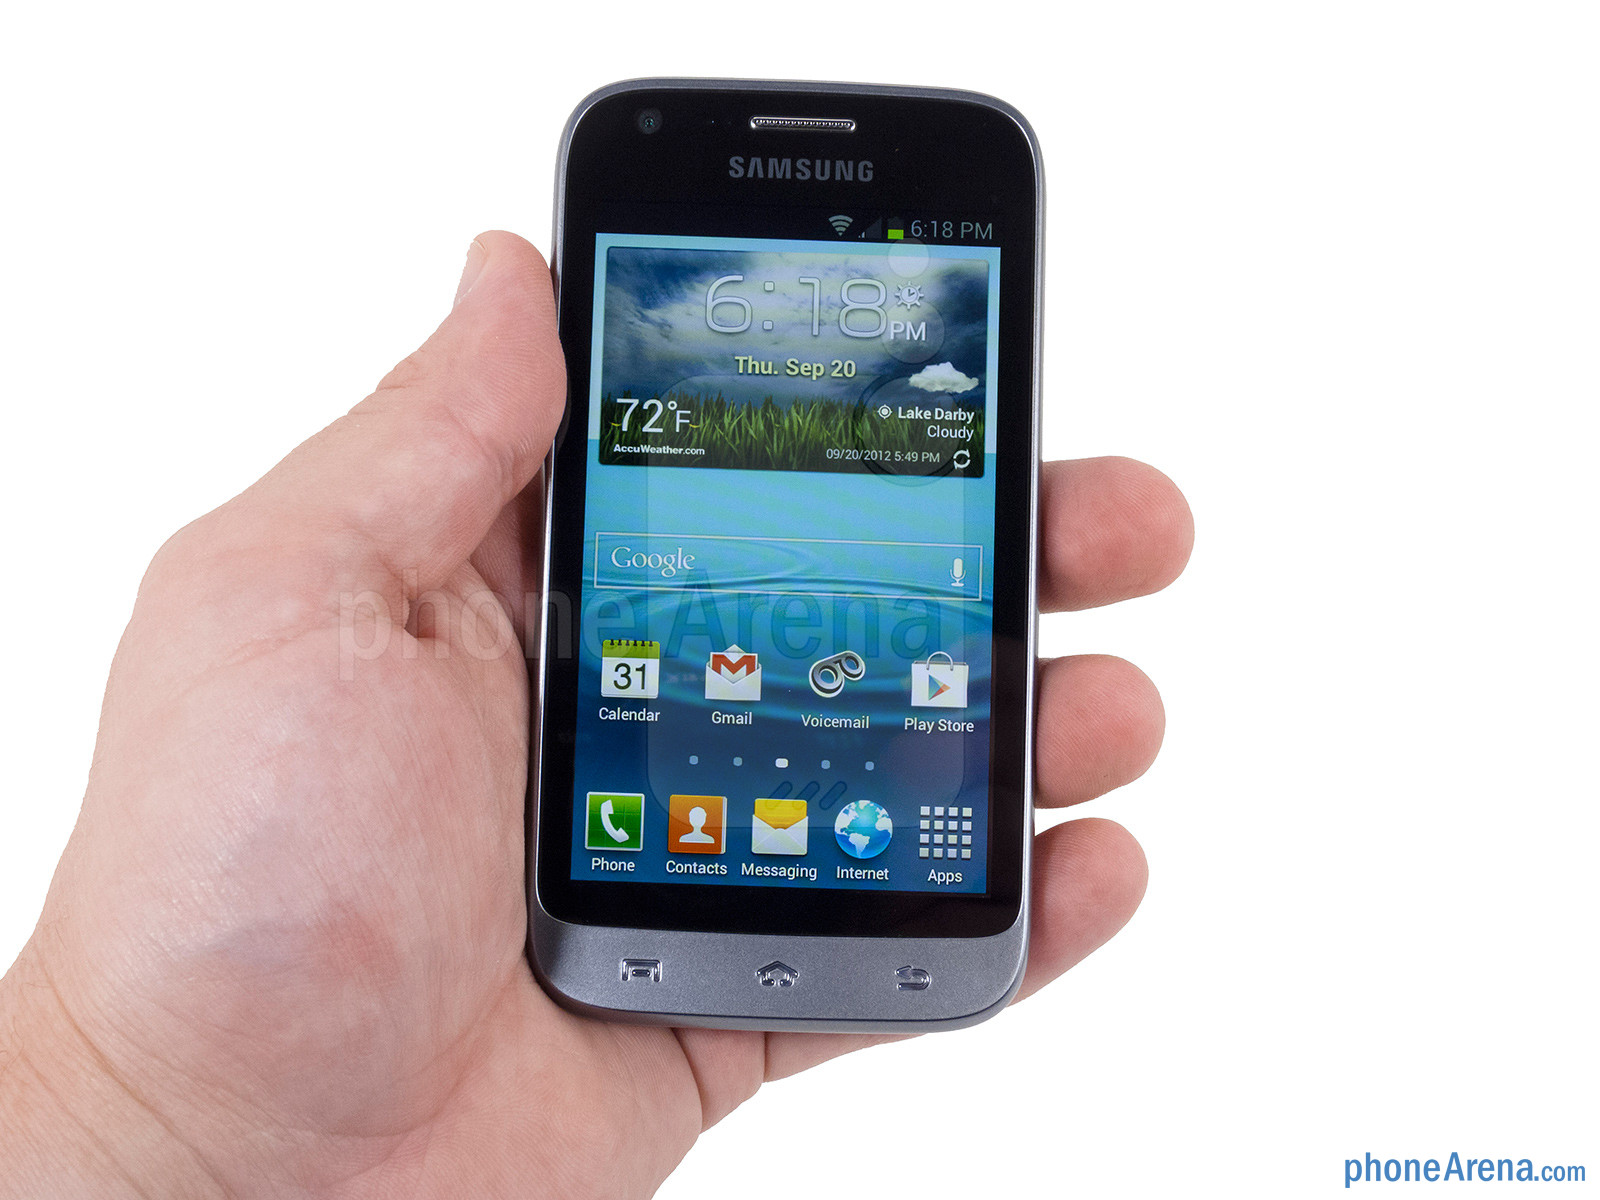 Samsung-Galaxy-Victory-4G-LTE-Review-01